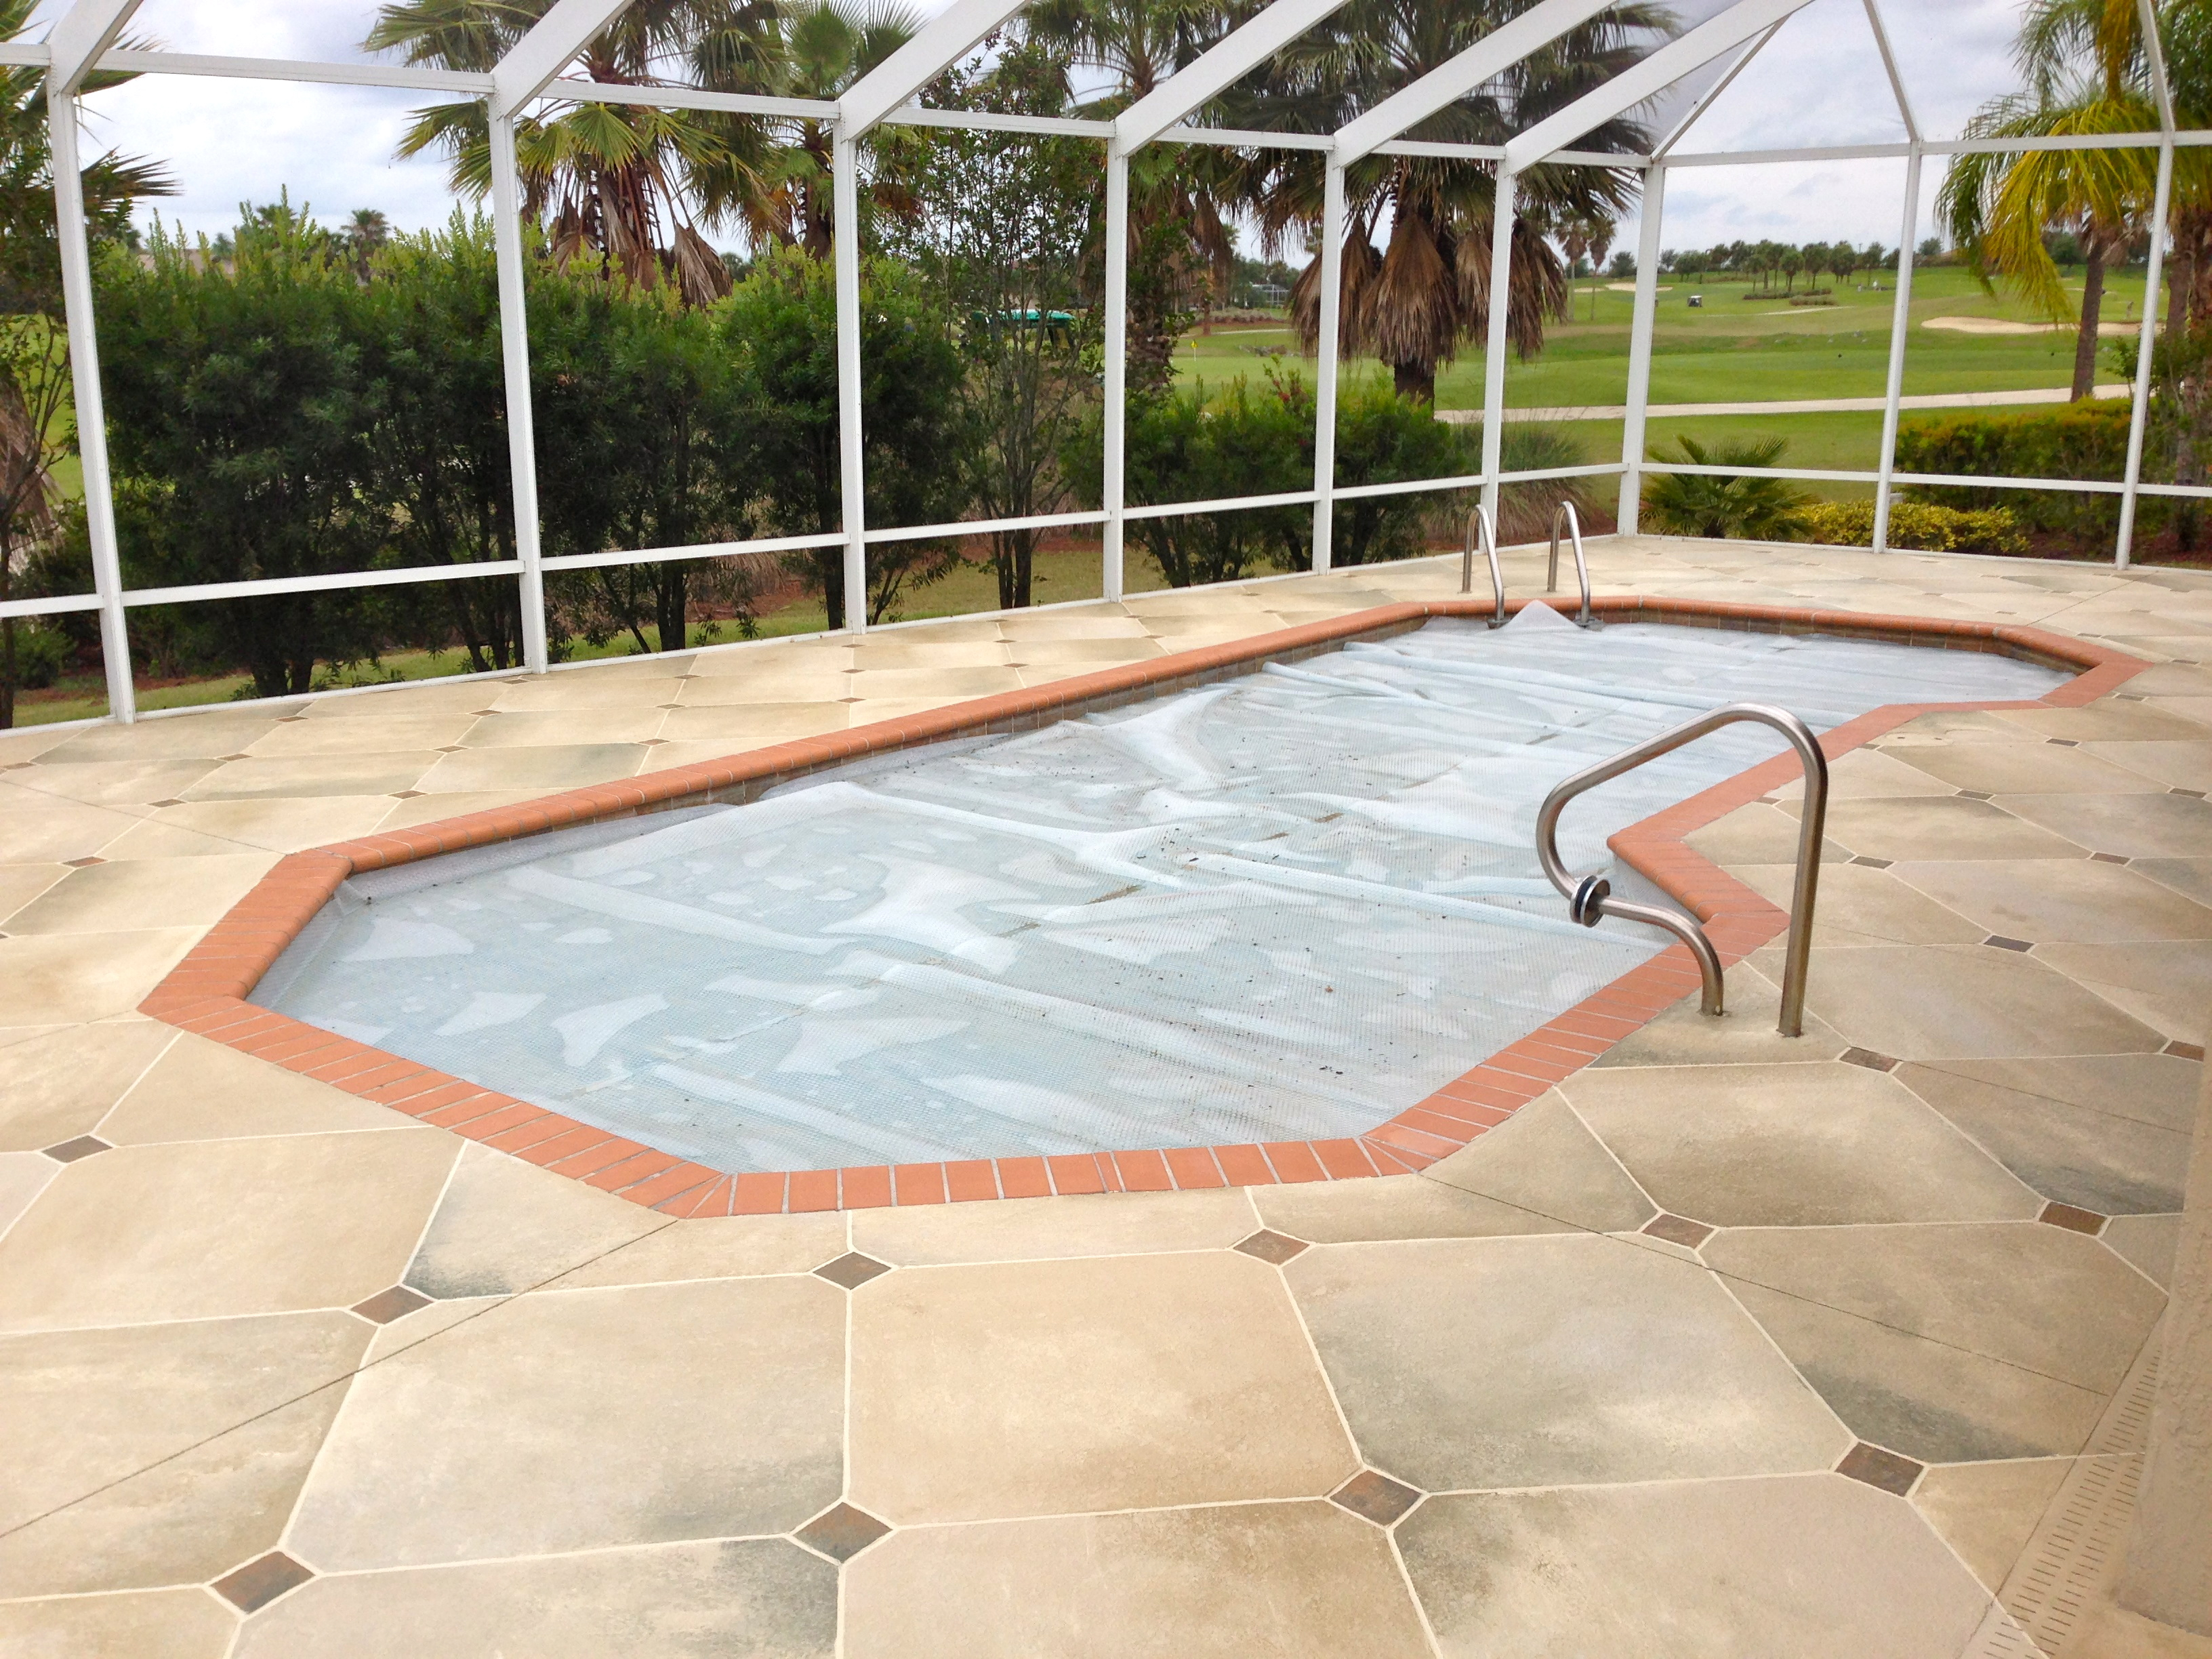 Concrete Designs Florida | Travertine Pool Deck